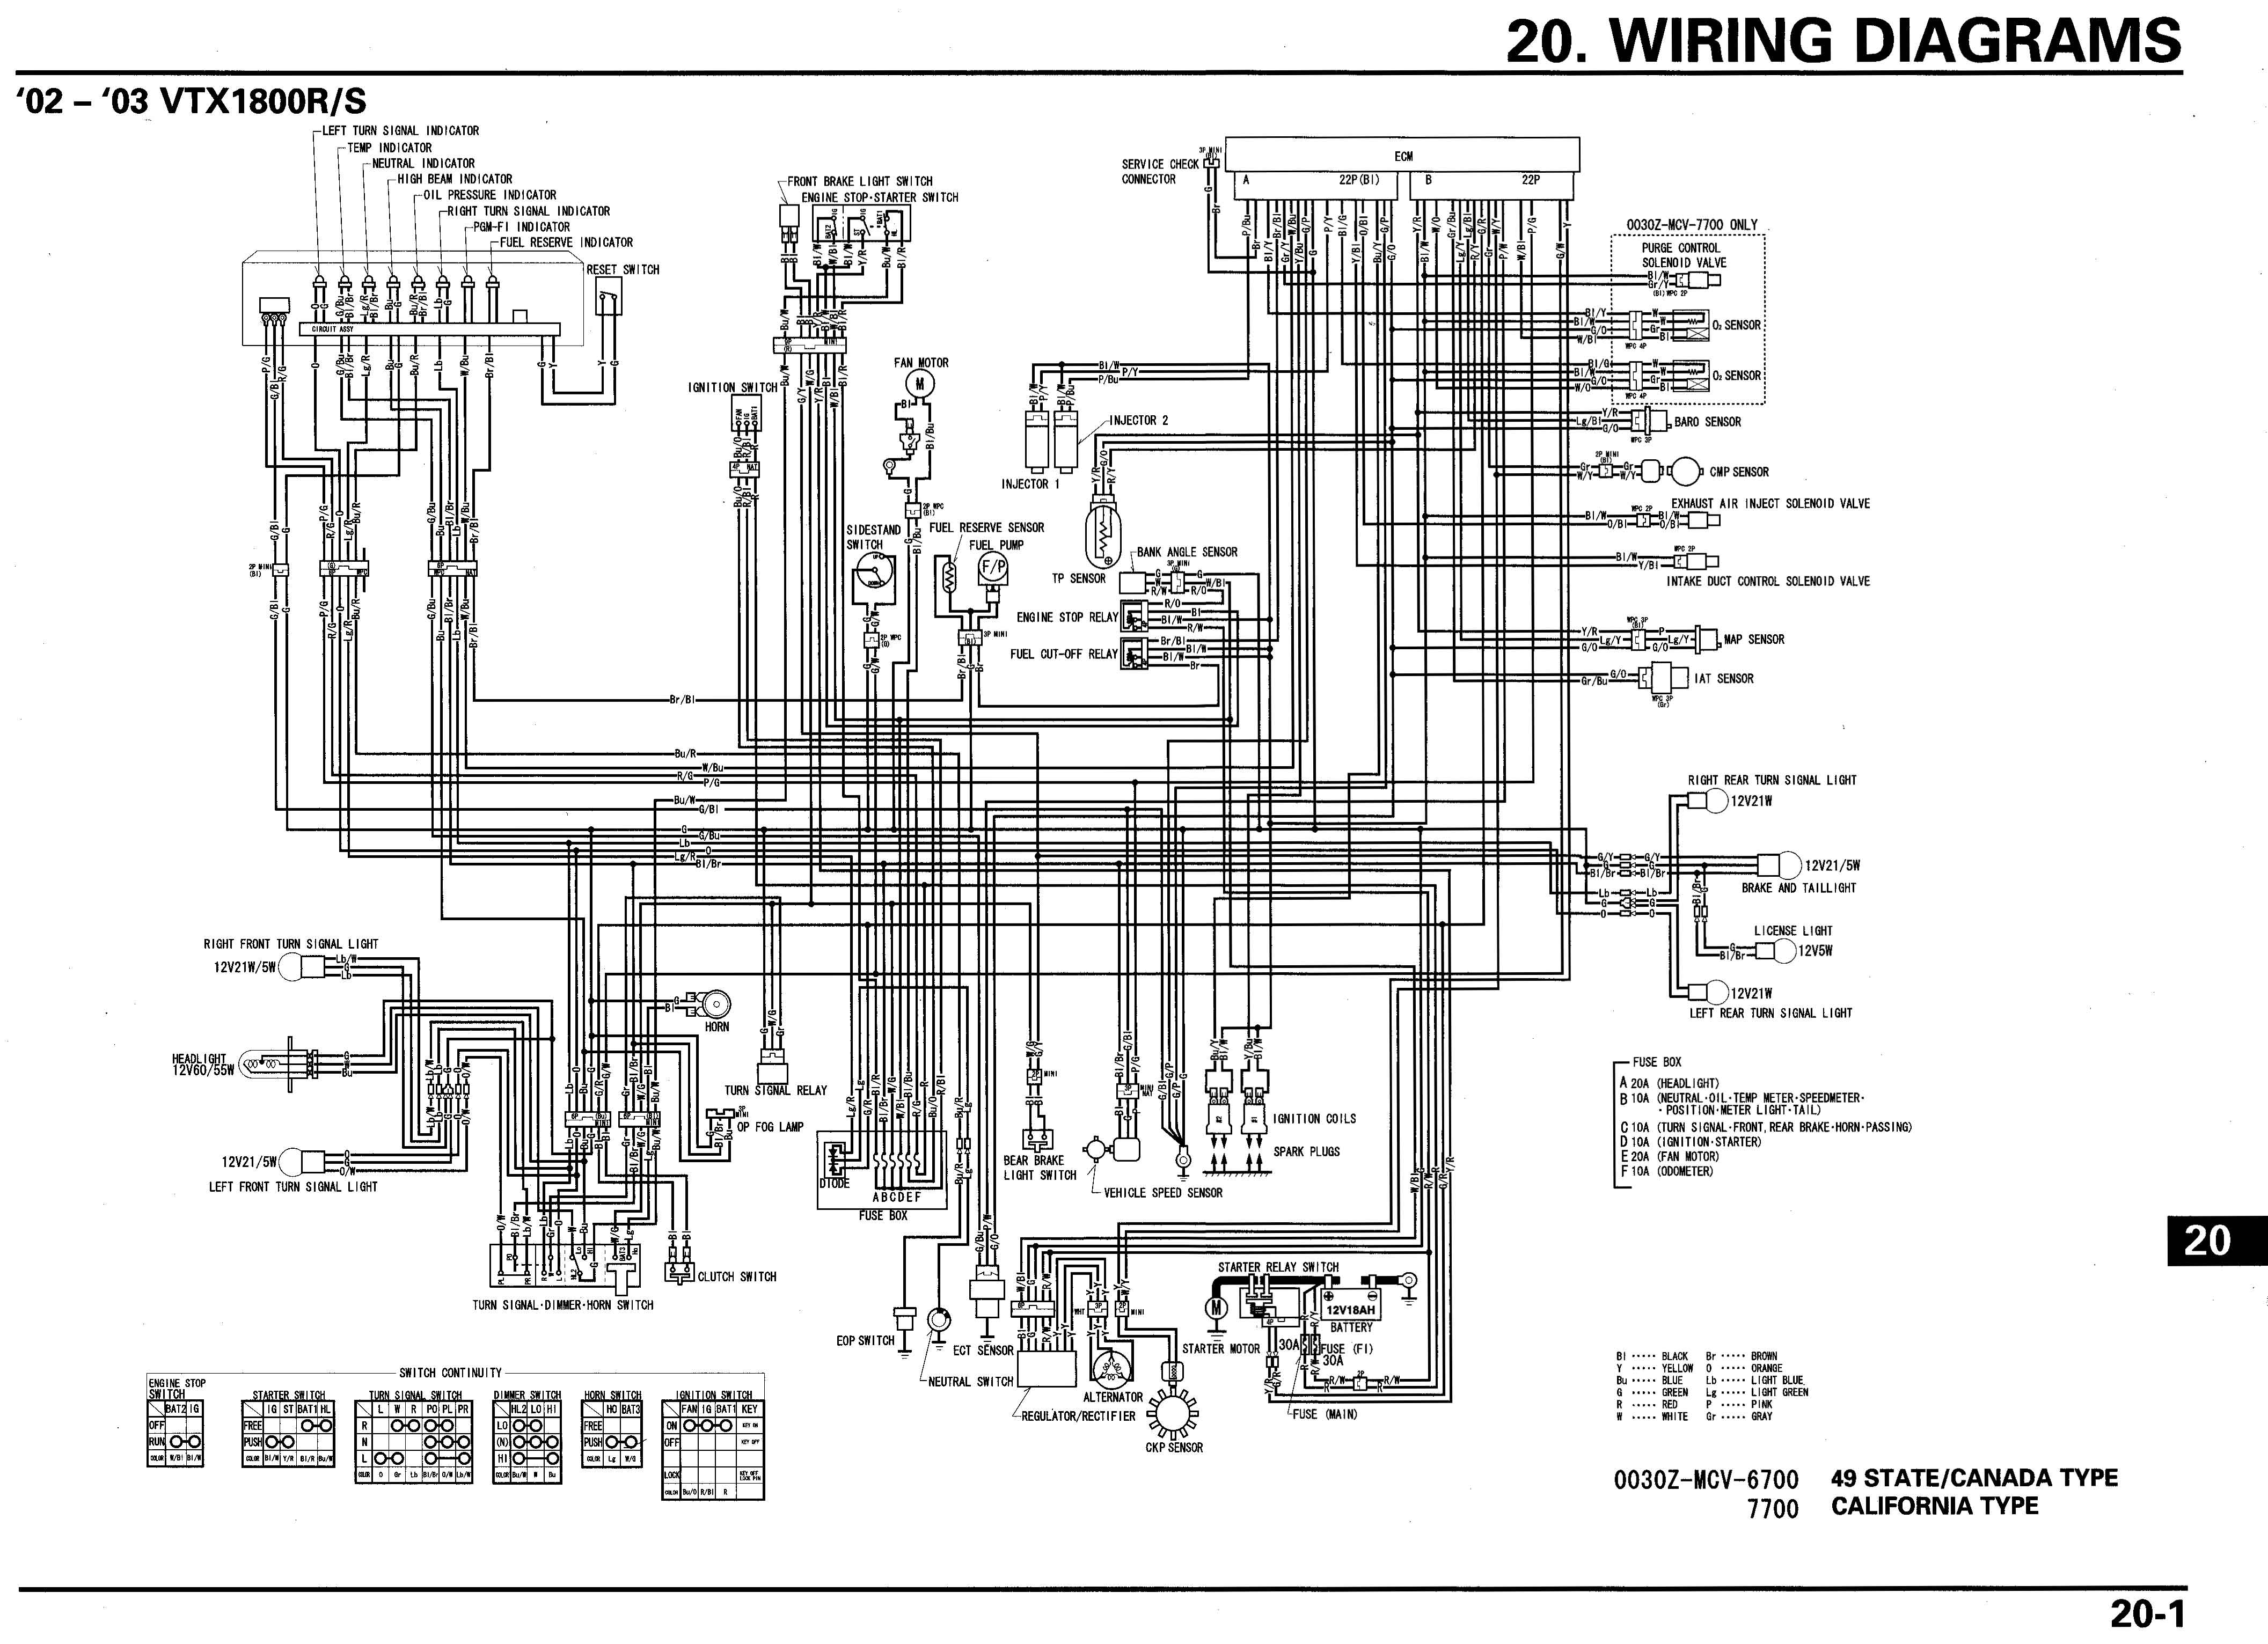 Honda S2000 Wiring Diagram Libraries Crx Fuse 02 Third Level2003 Schematic Blog